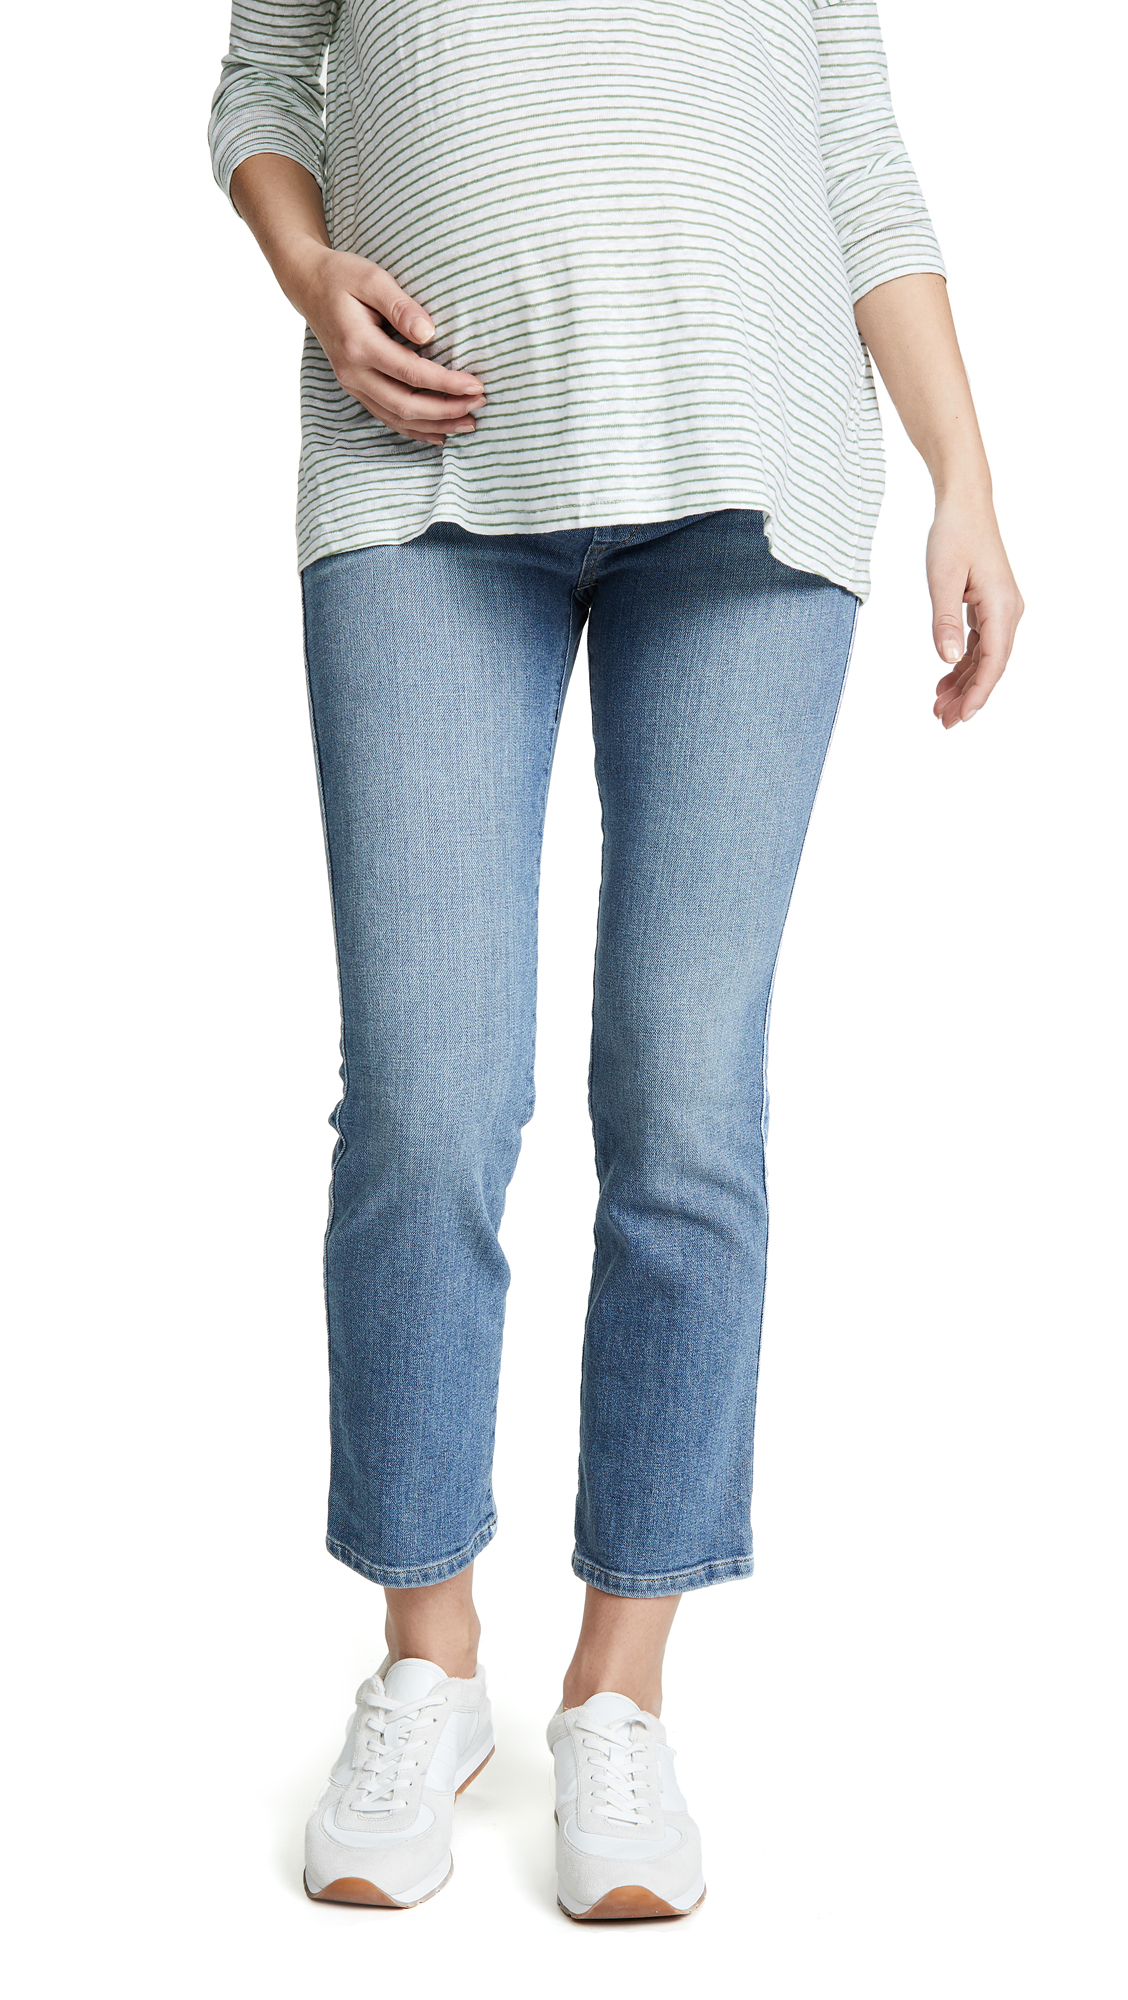 James Jeans Sloane Maternity Jeans